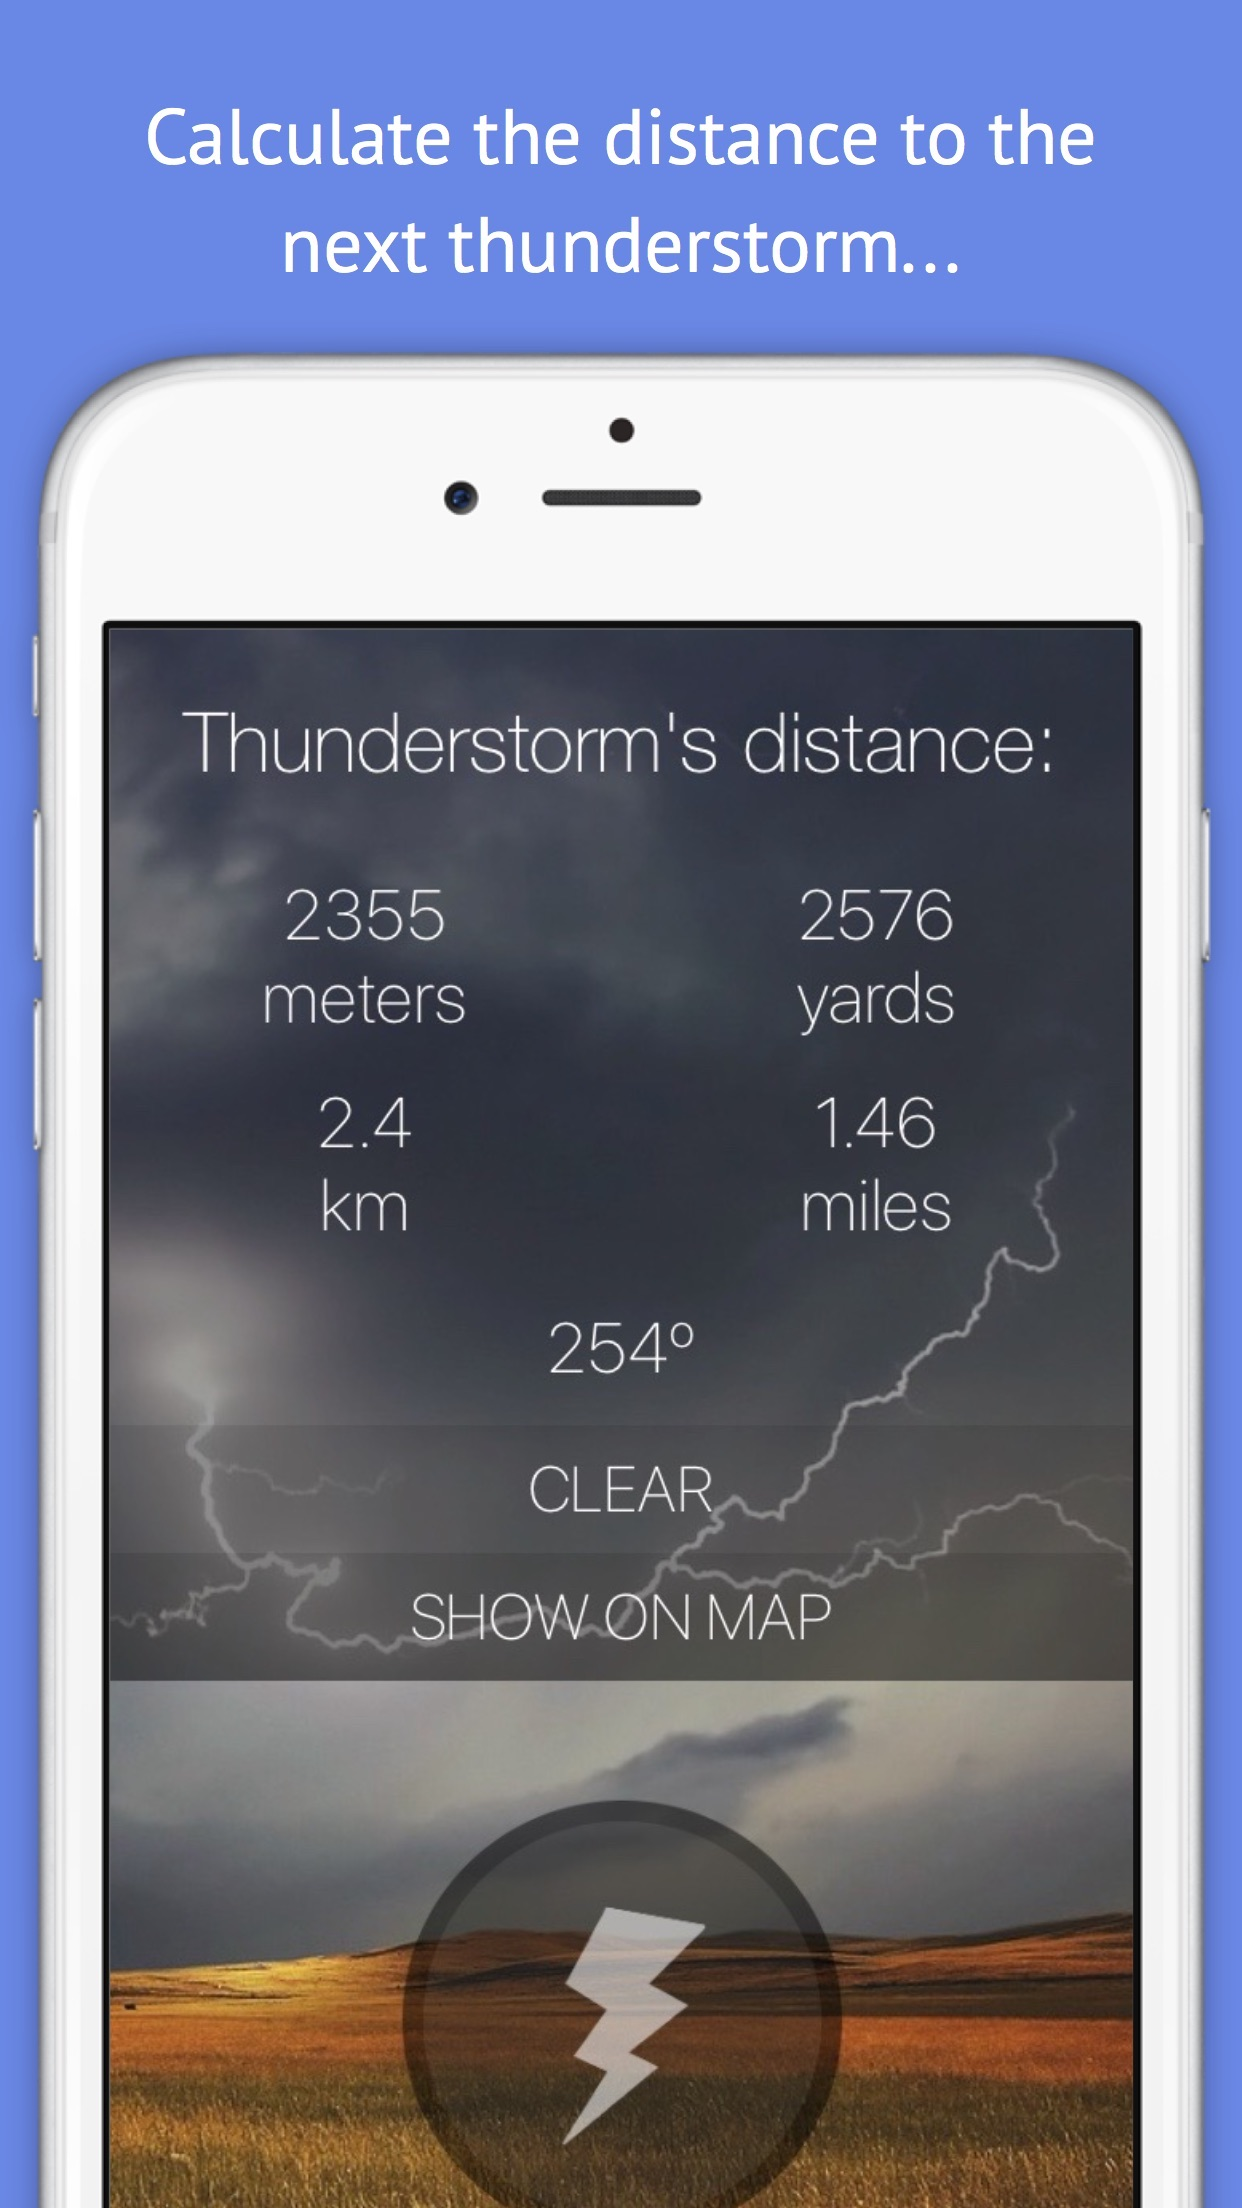 Thunderstorm Location Calculator - Get Distance & Location of the next Thunderstorm! Screenshot